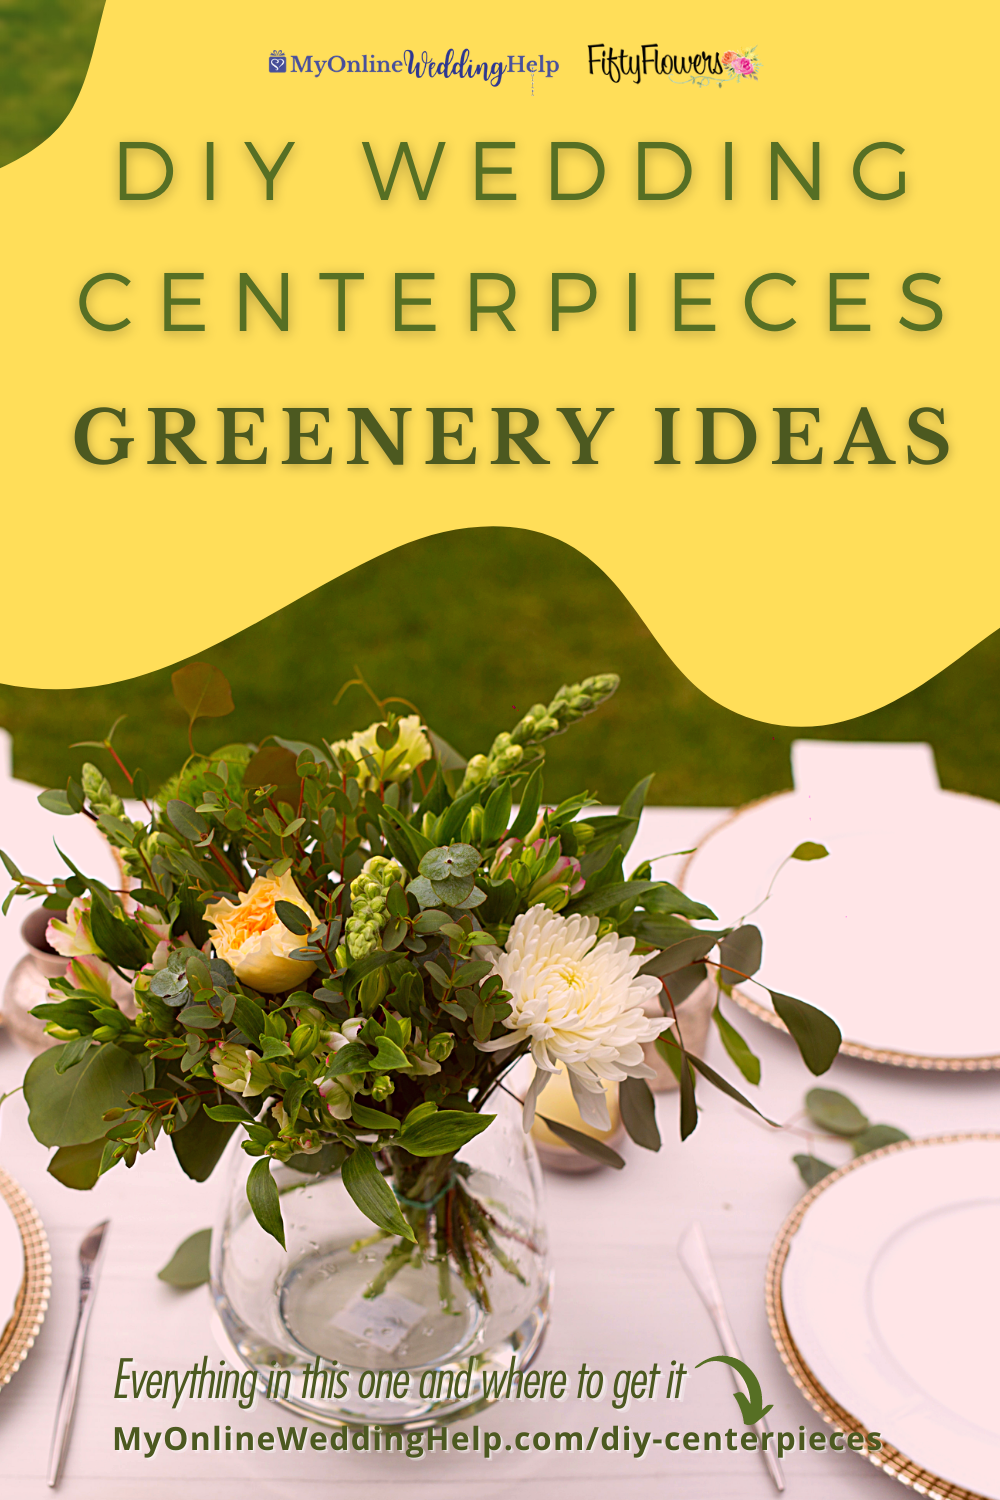 DIY wedding centerpieces - greenery ideas. With a photo of green centerpiece with flowers setting on a table.